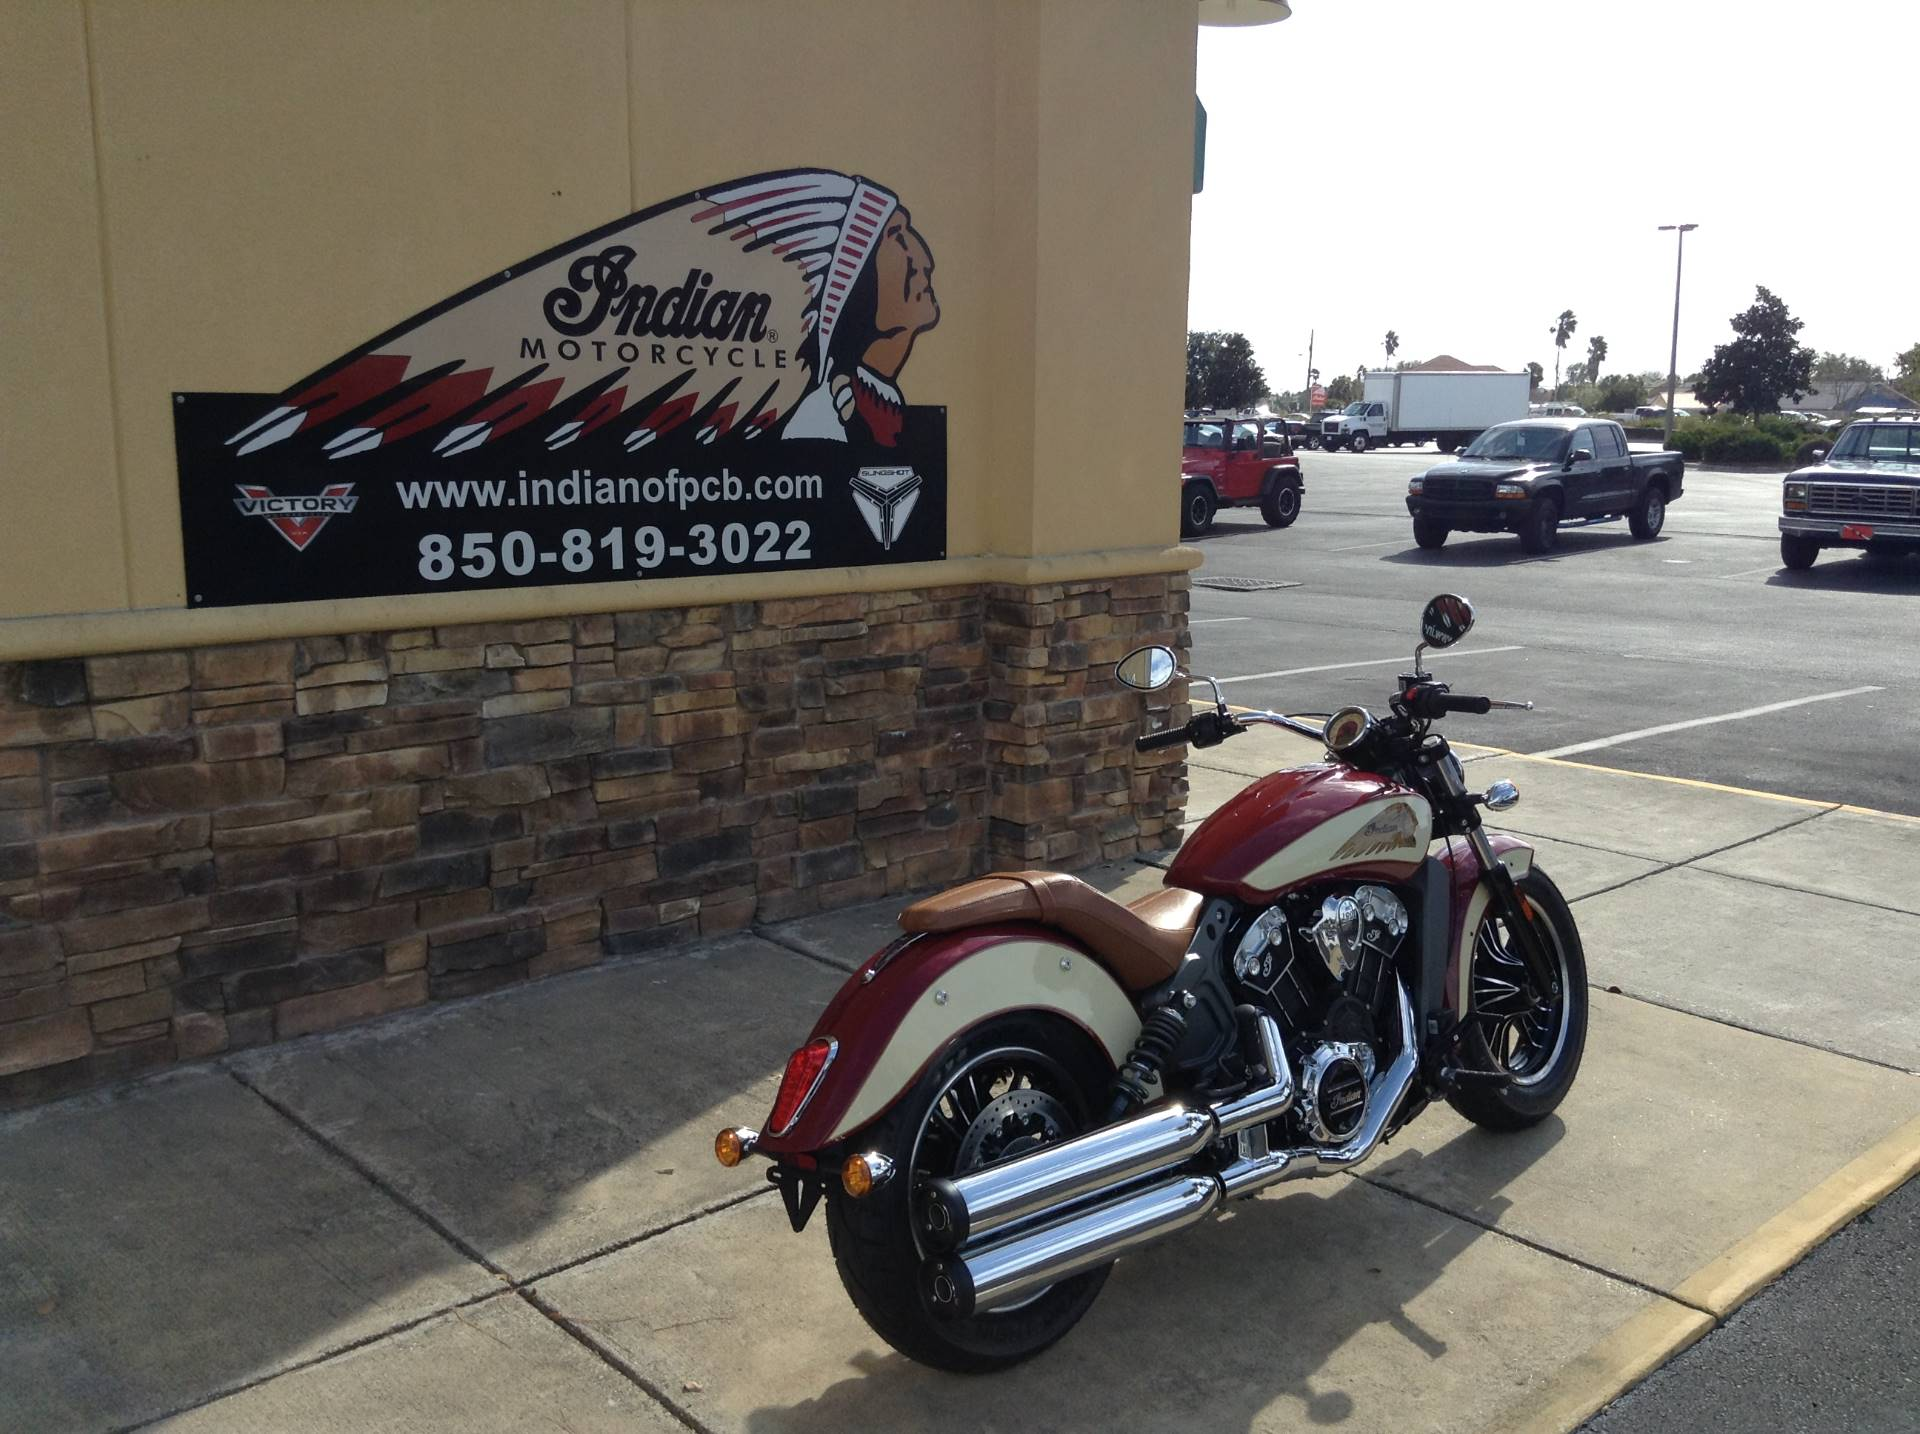 2020 Indian SCOUT ABS in Panama City Beach, Florida - Photo 2